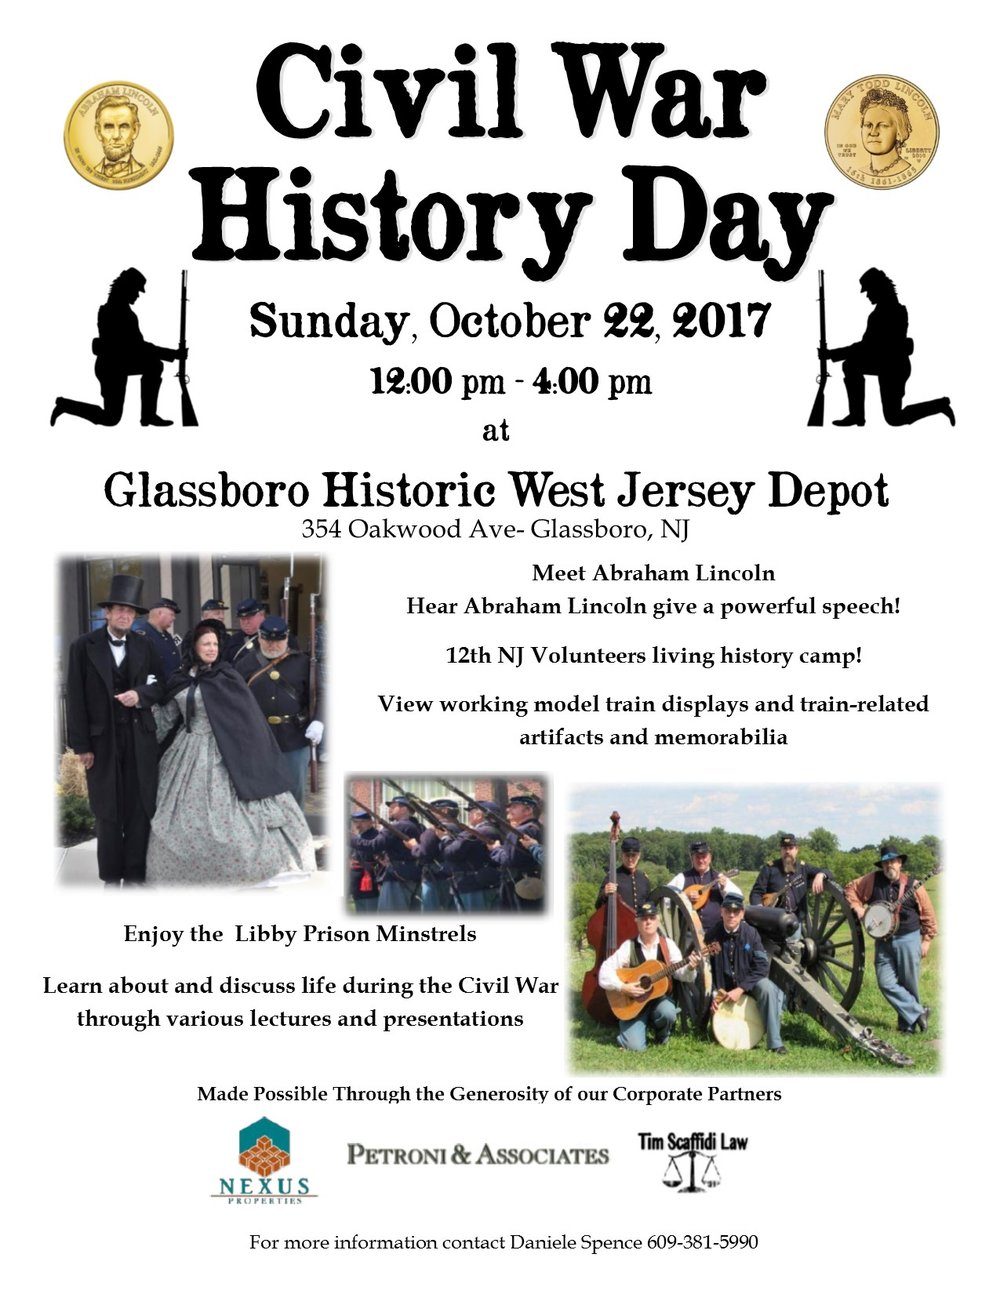 glassboro Civil War history day